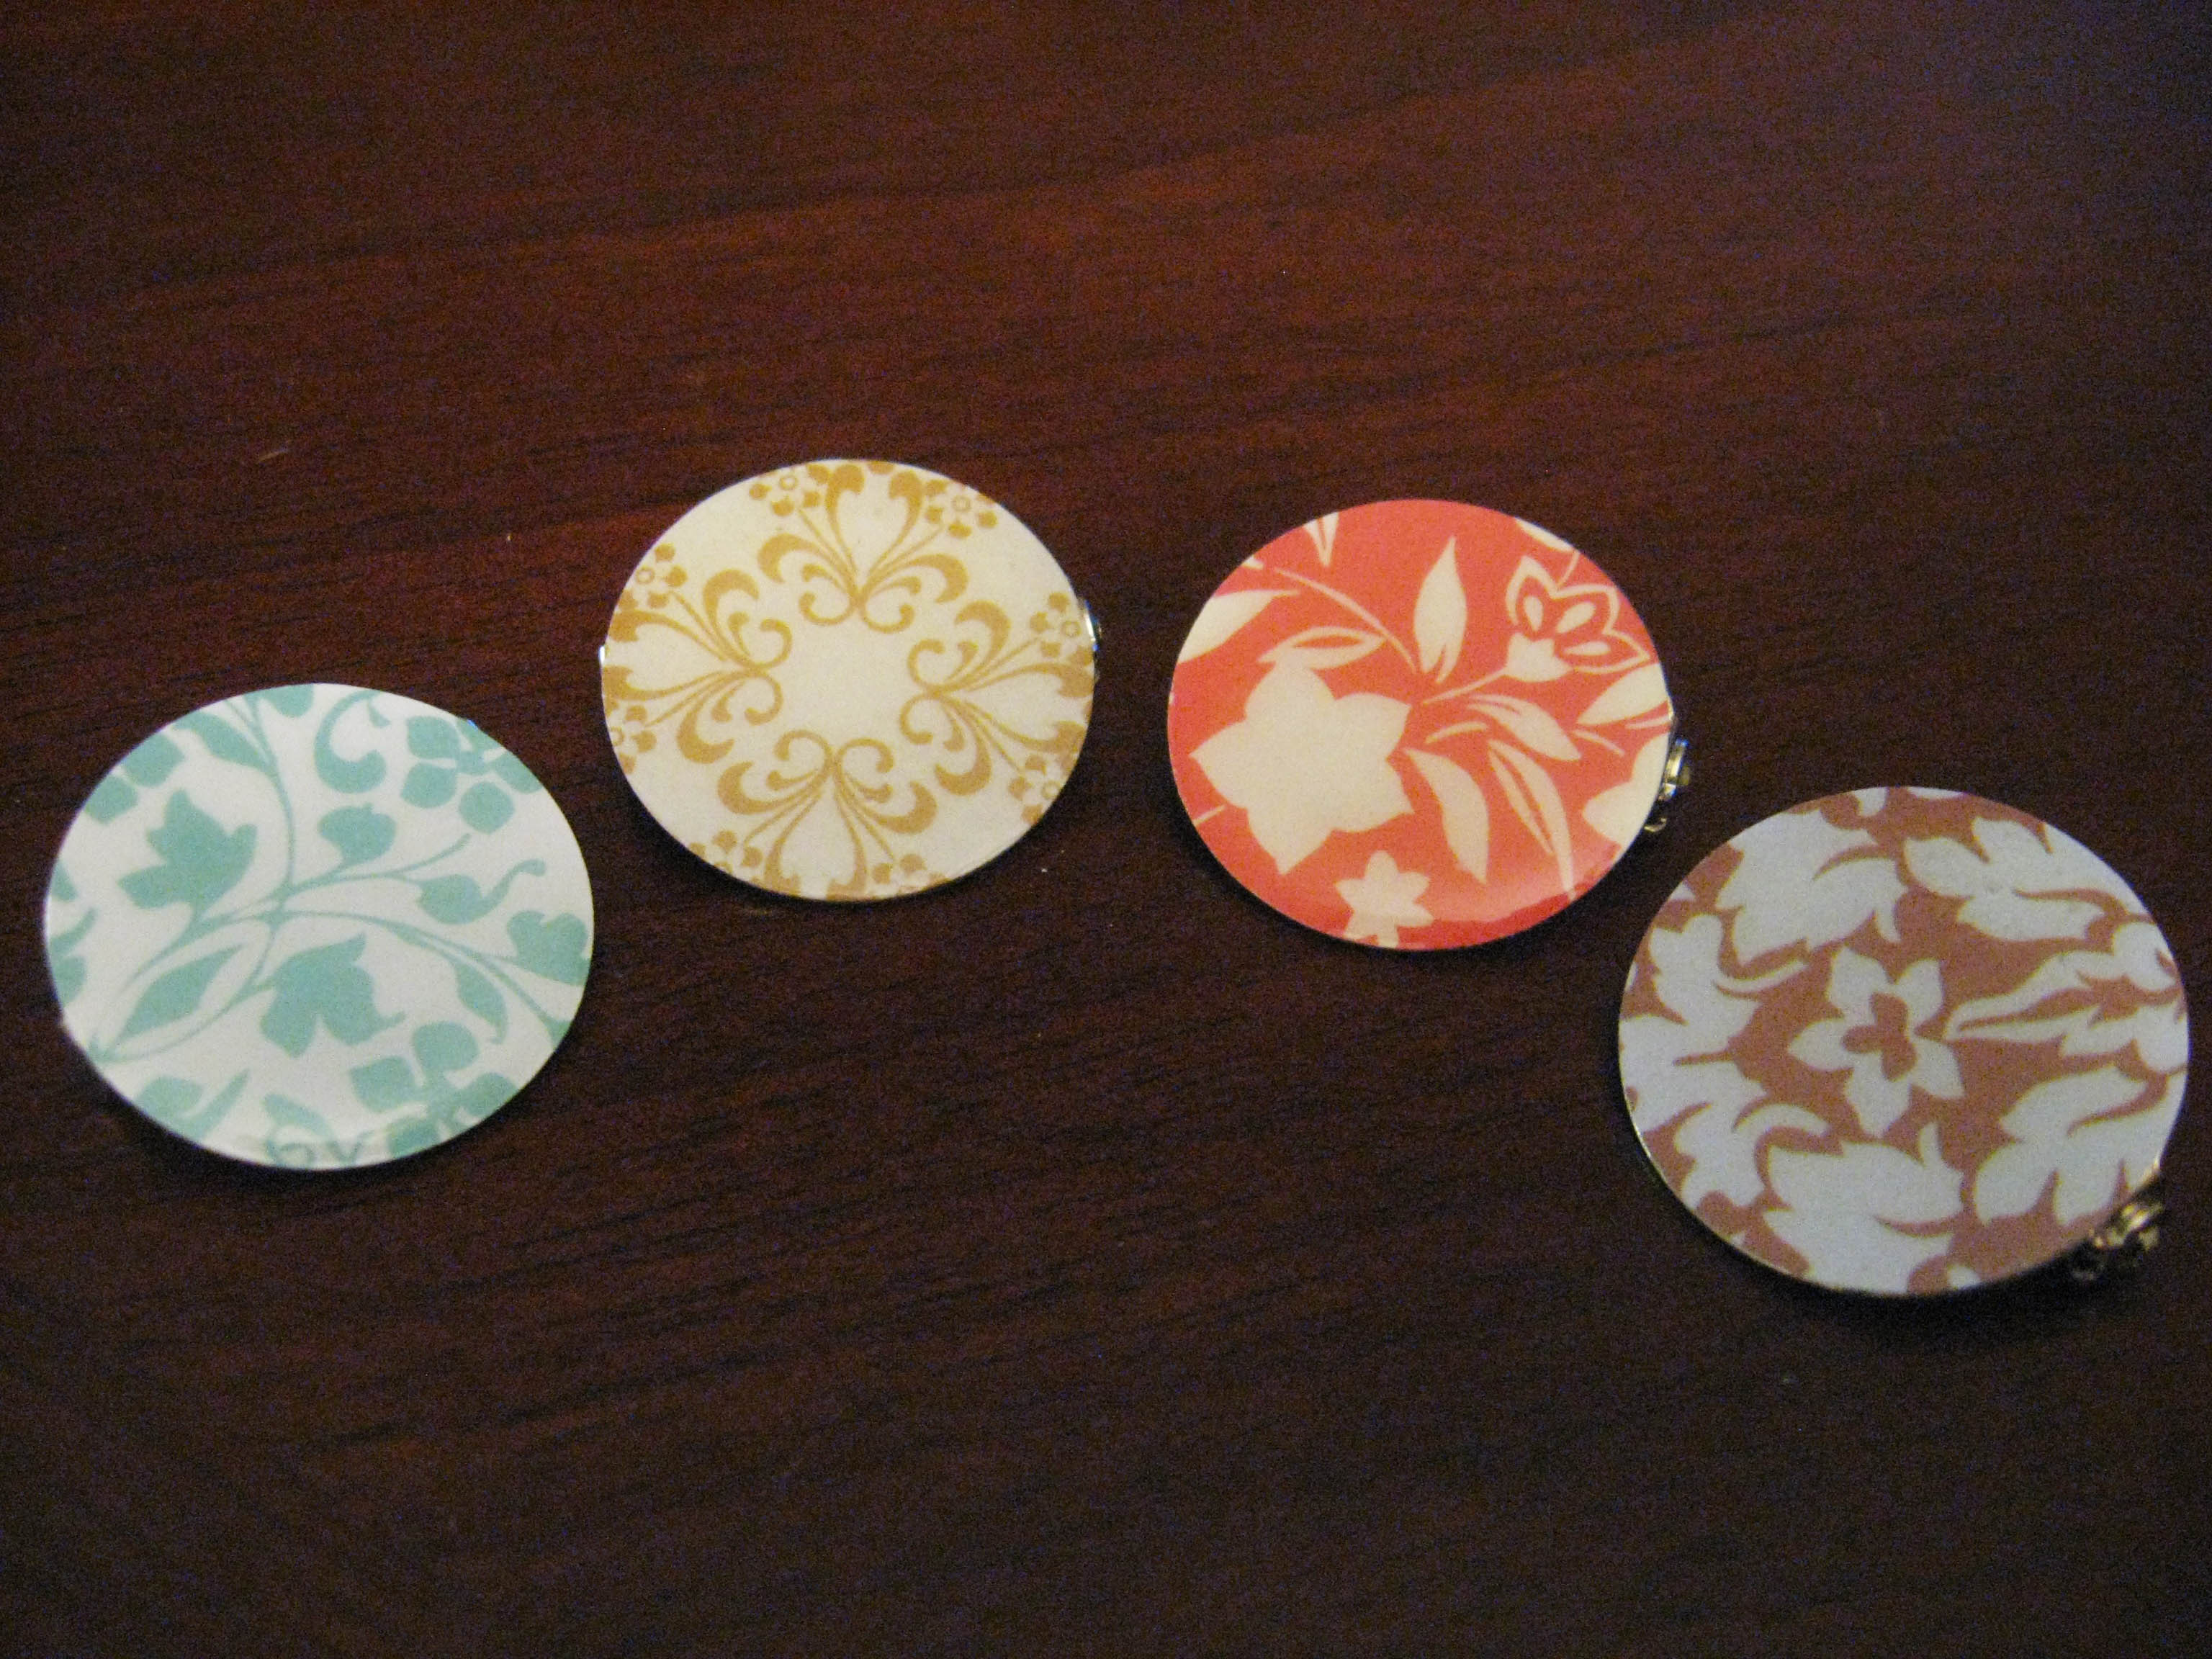 Diy decorative scrapbook paper pins make something mondays for Decorative pins for crafts